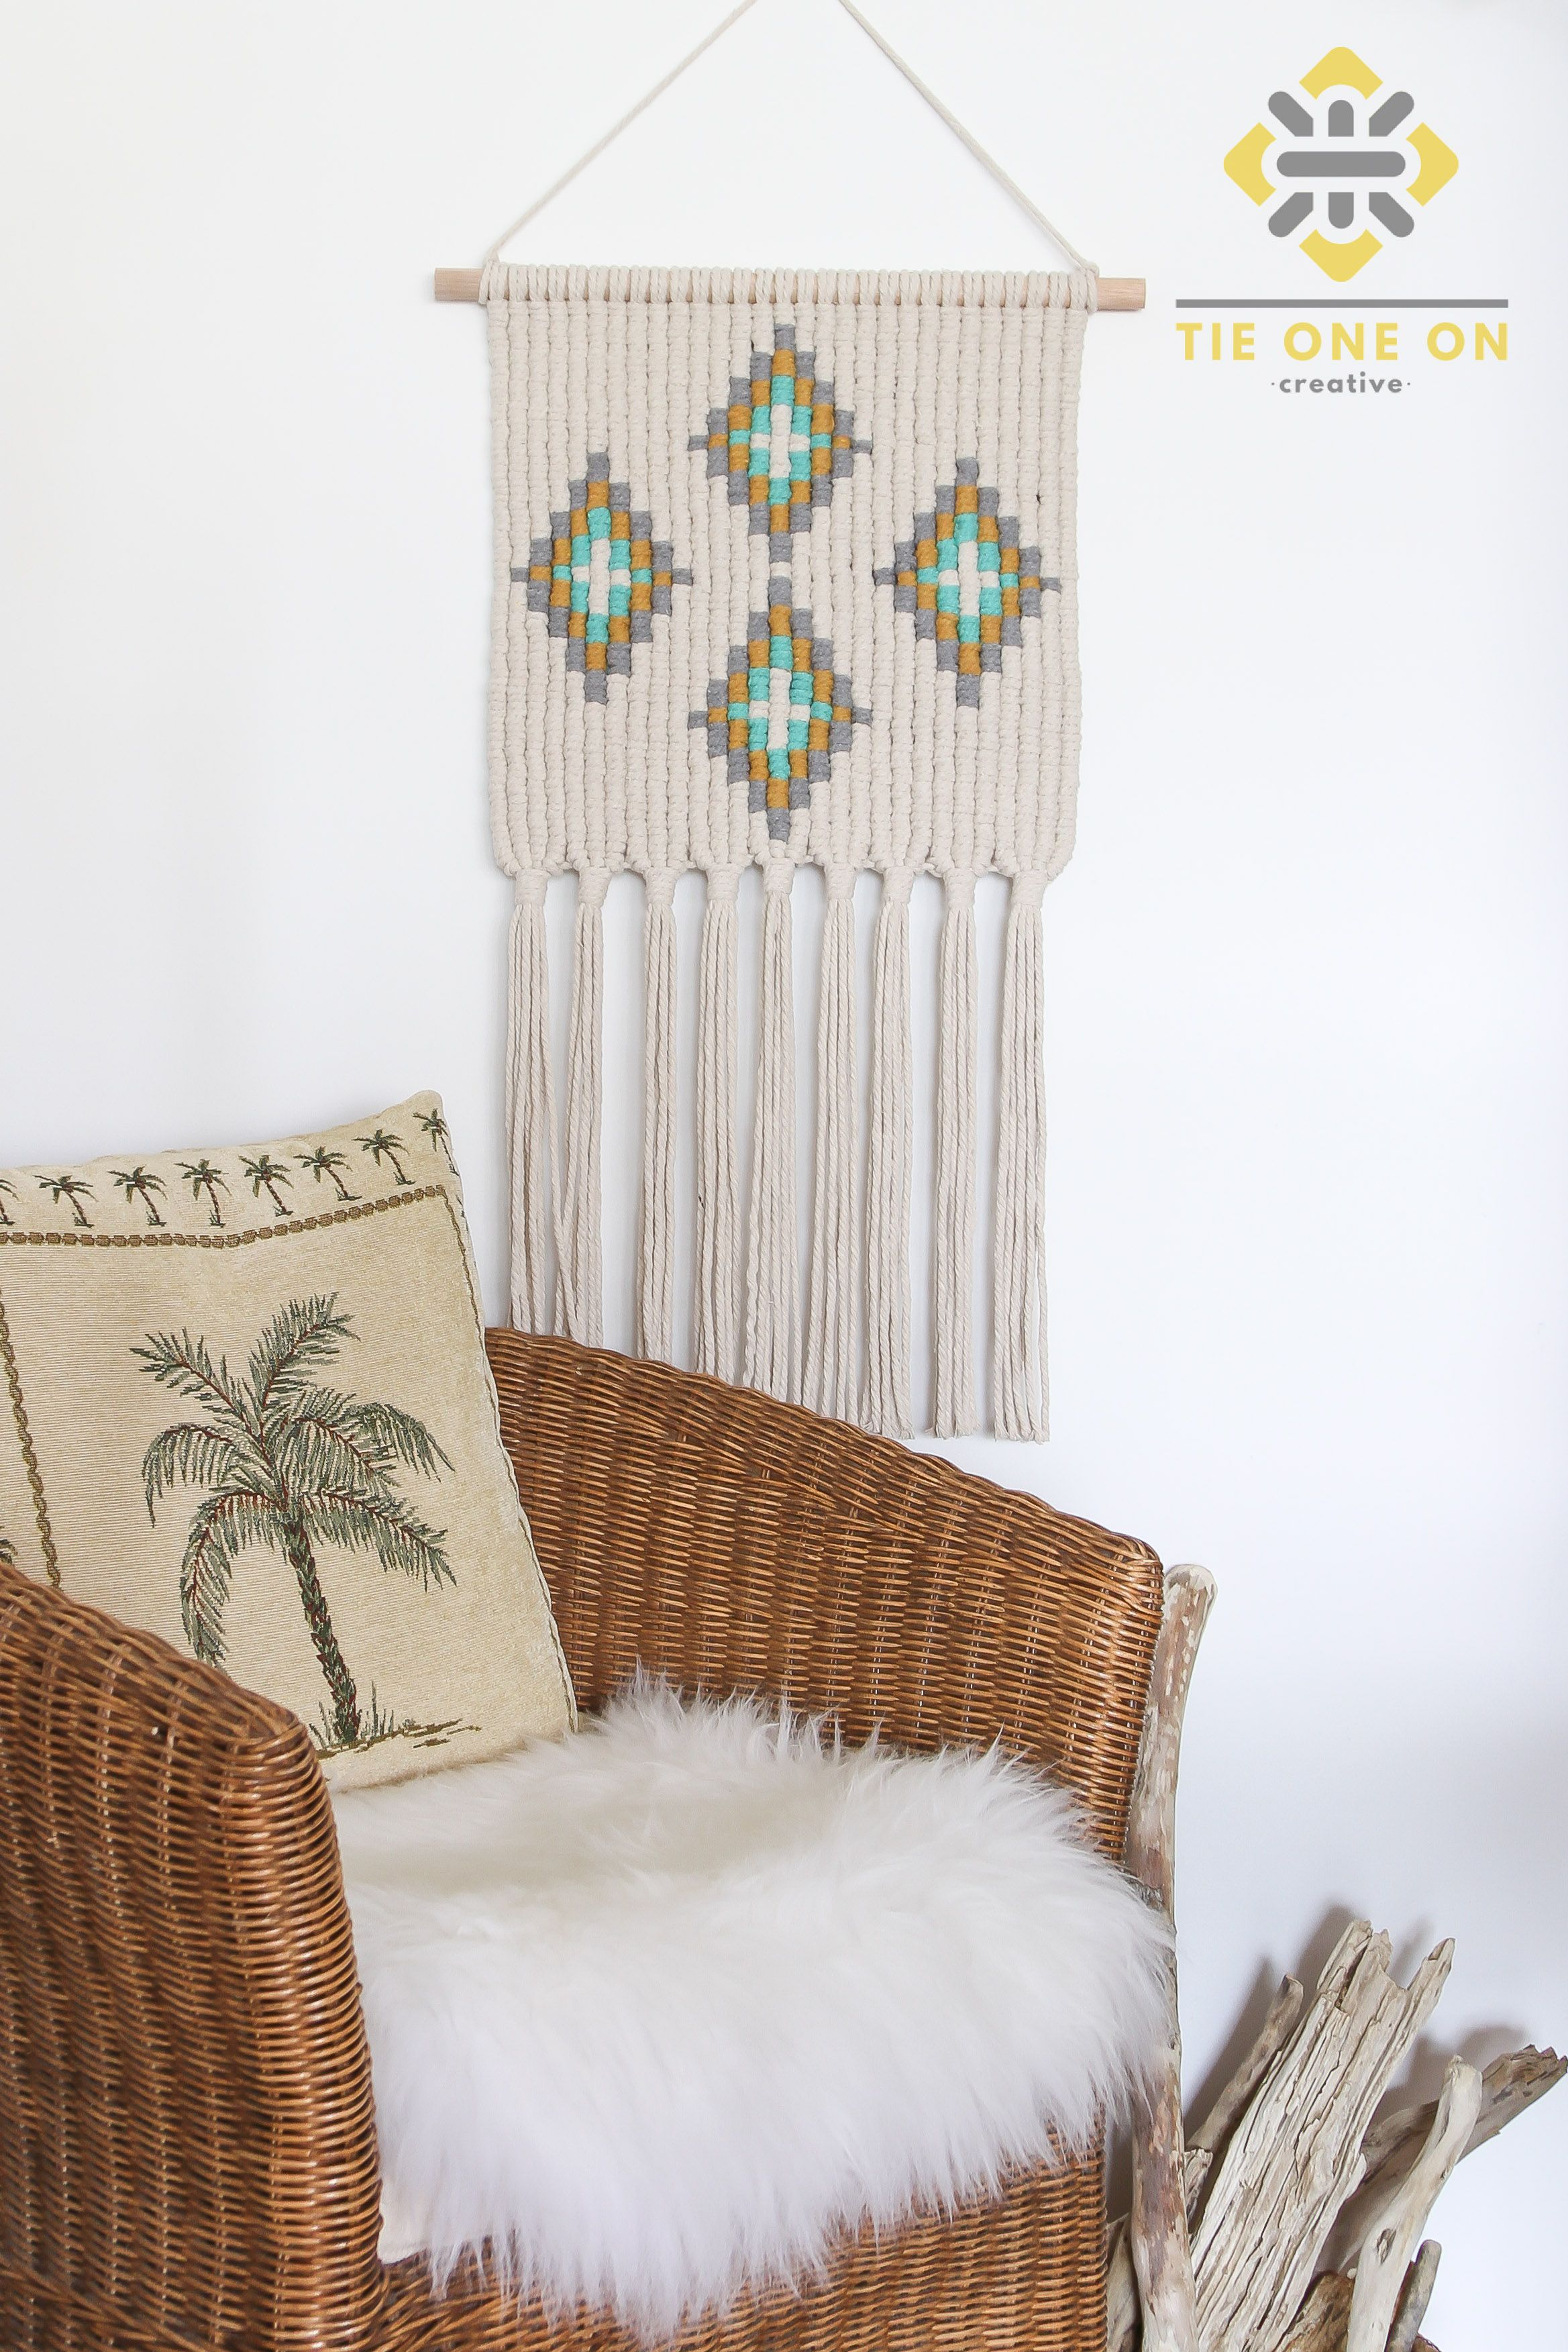 Macrame Wall Hanging Mid Century Modern Design Retro Lucy